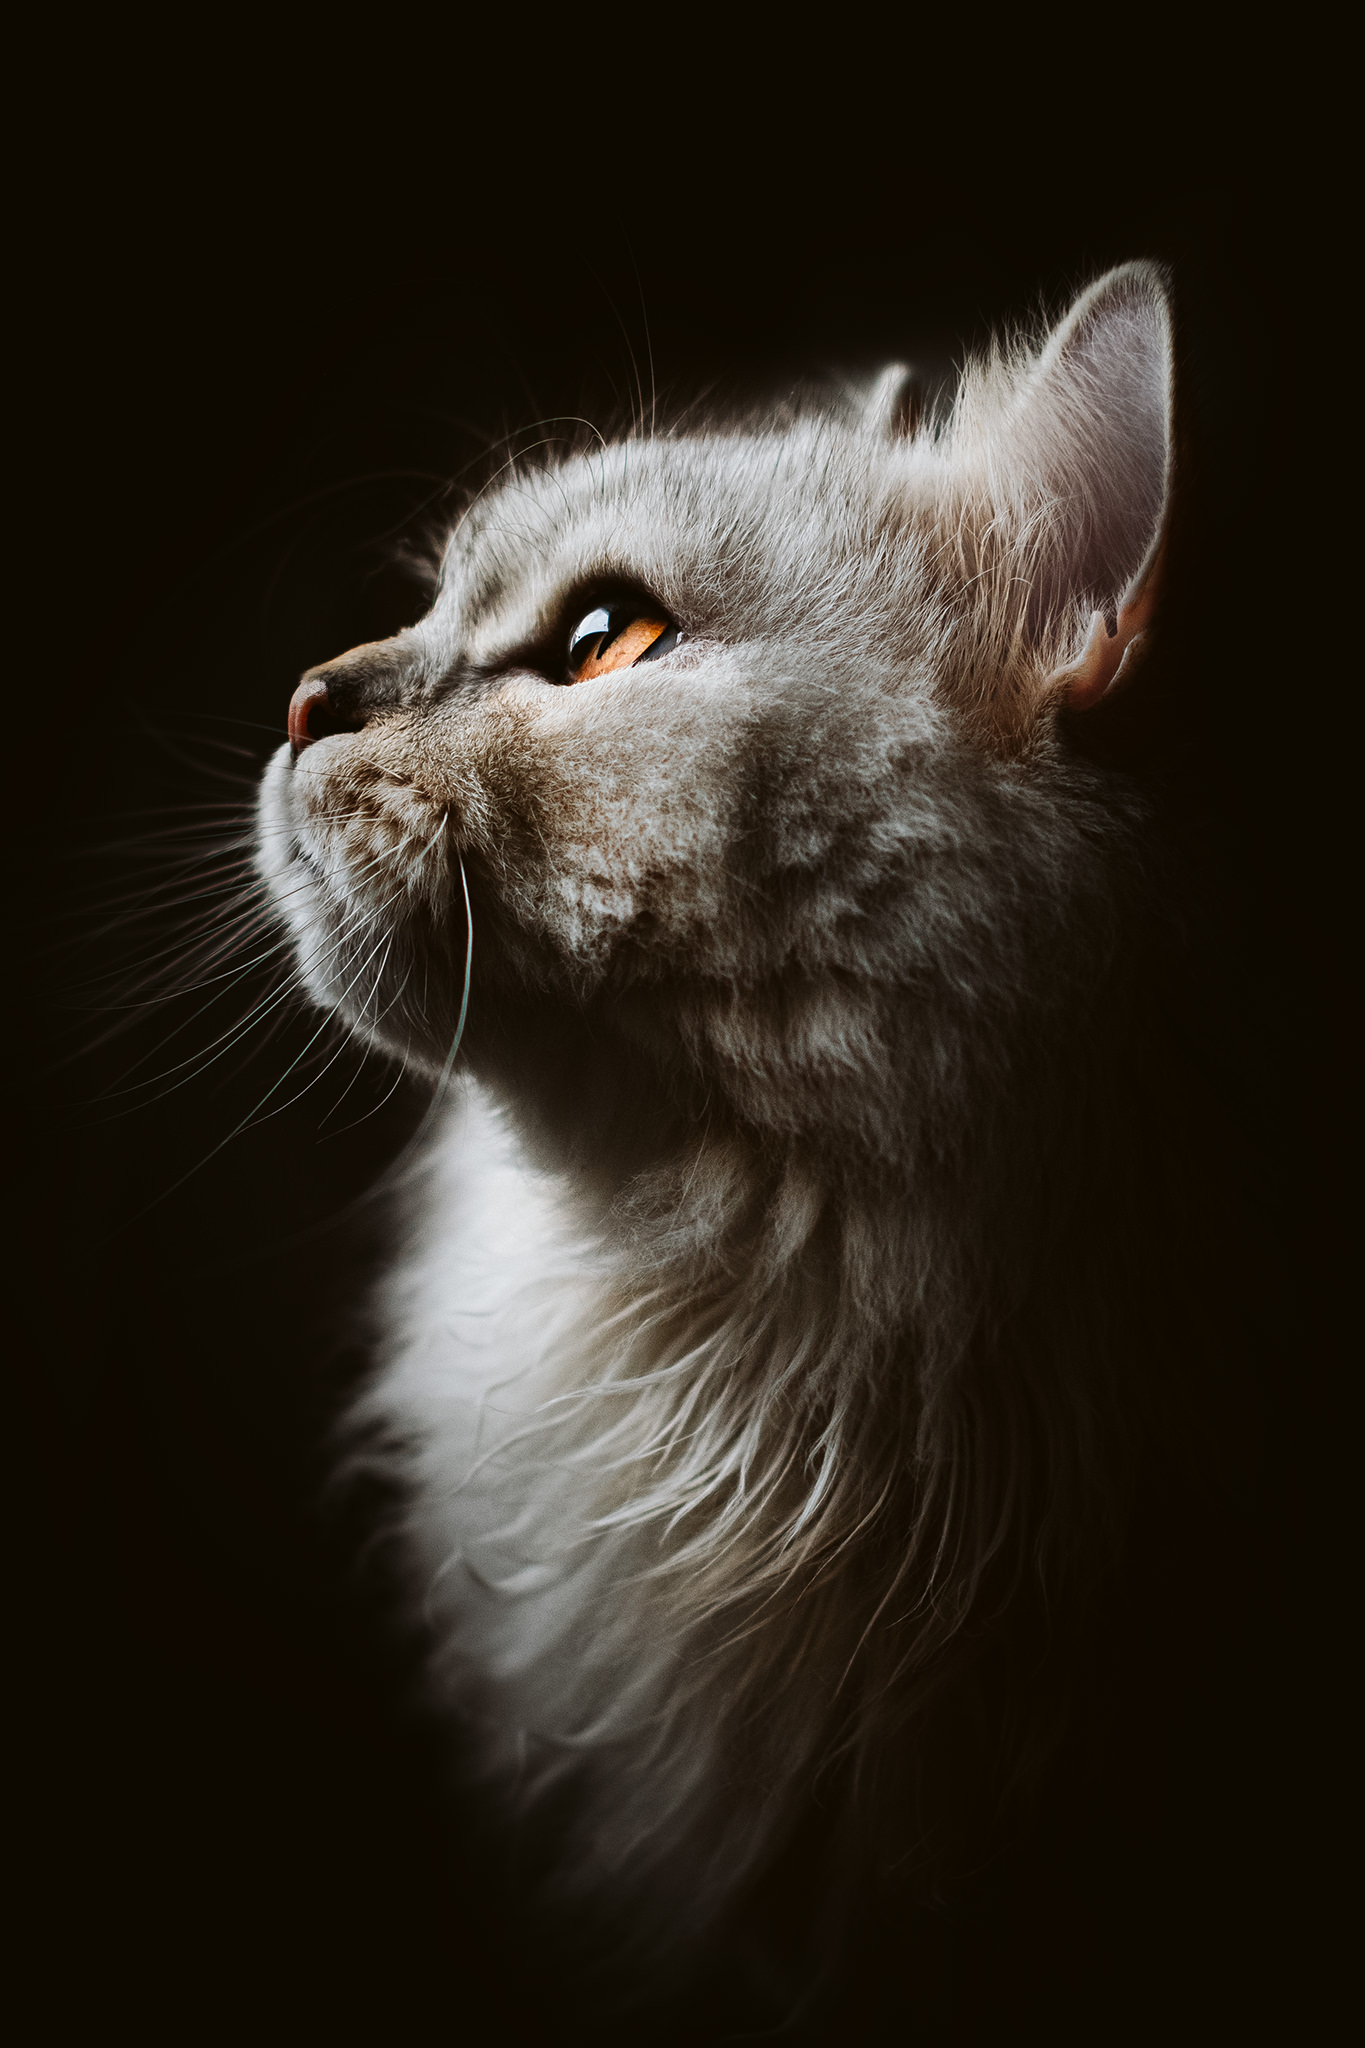 66 Gorgeous Pictures Of Dogs And Cats